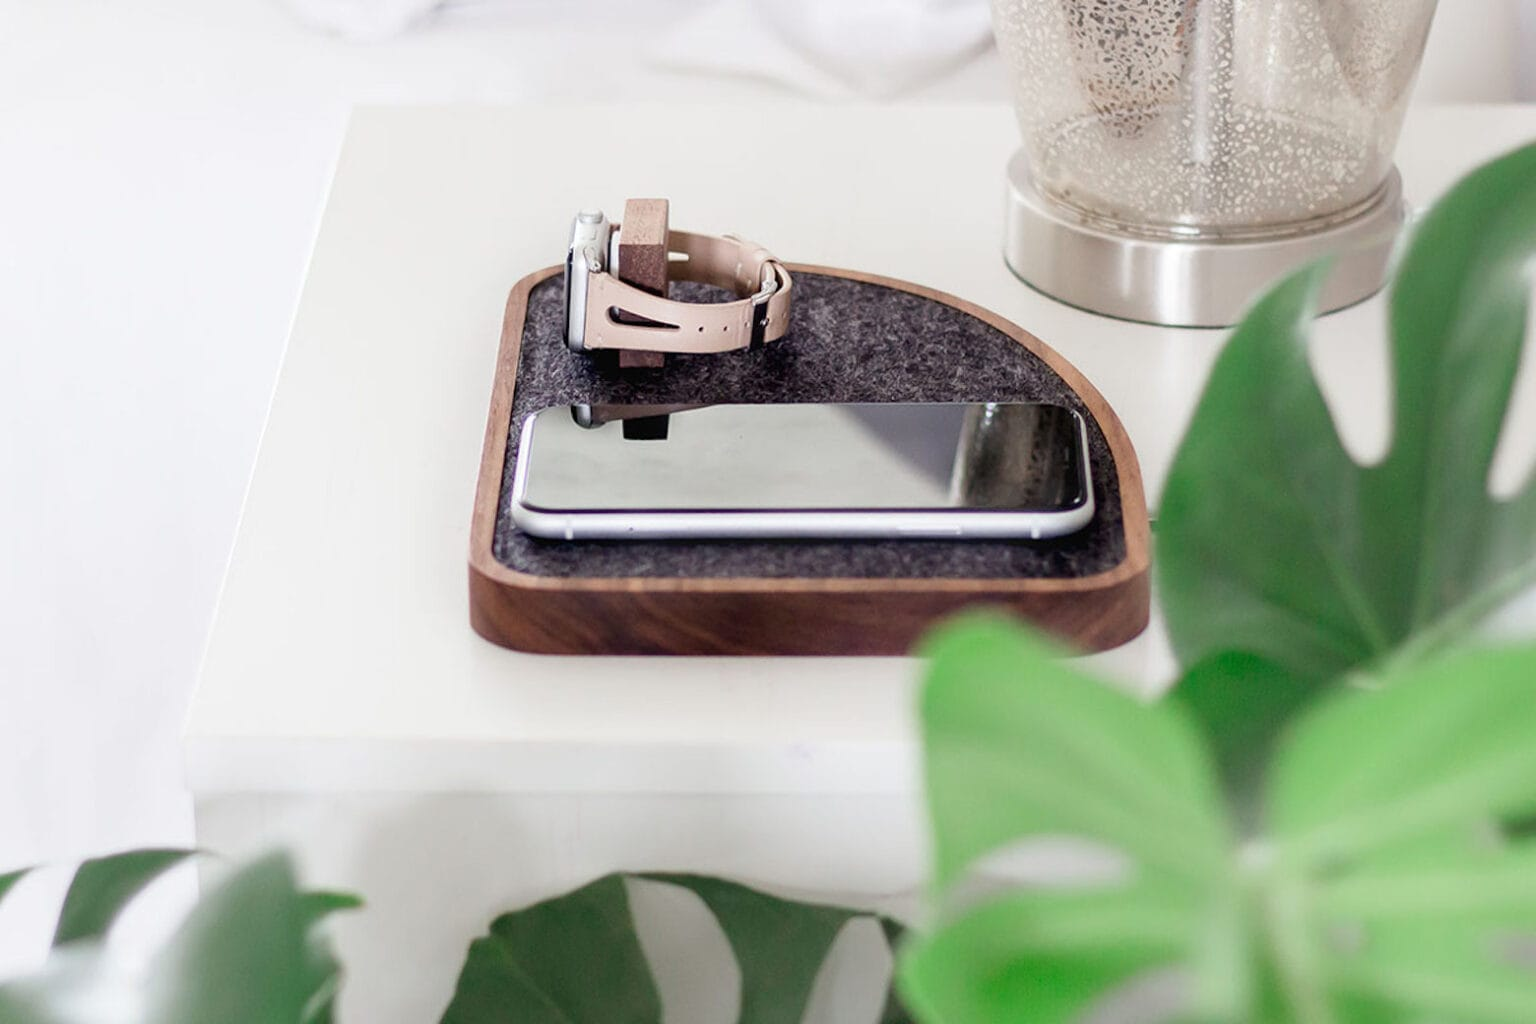 These wireless charging docks will keep all of your devices powered up